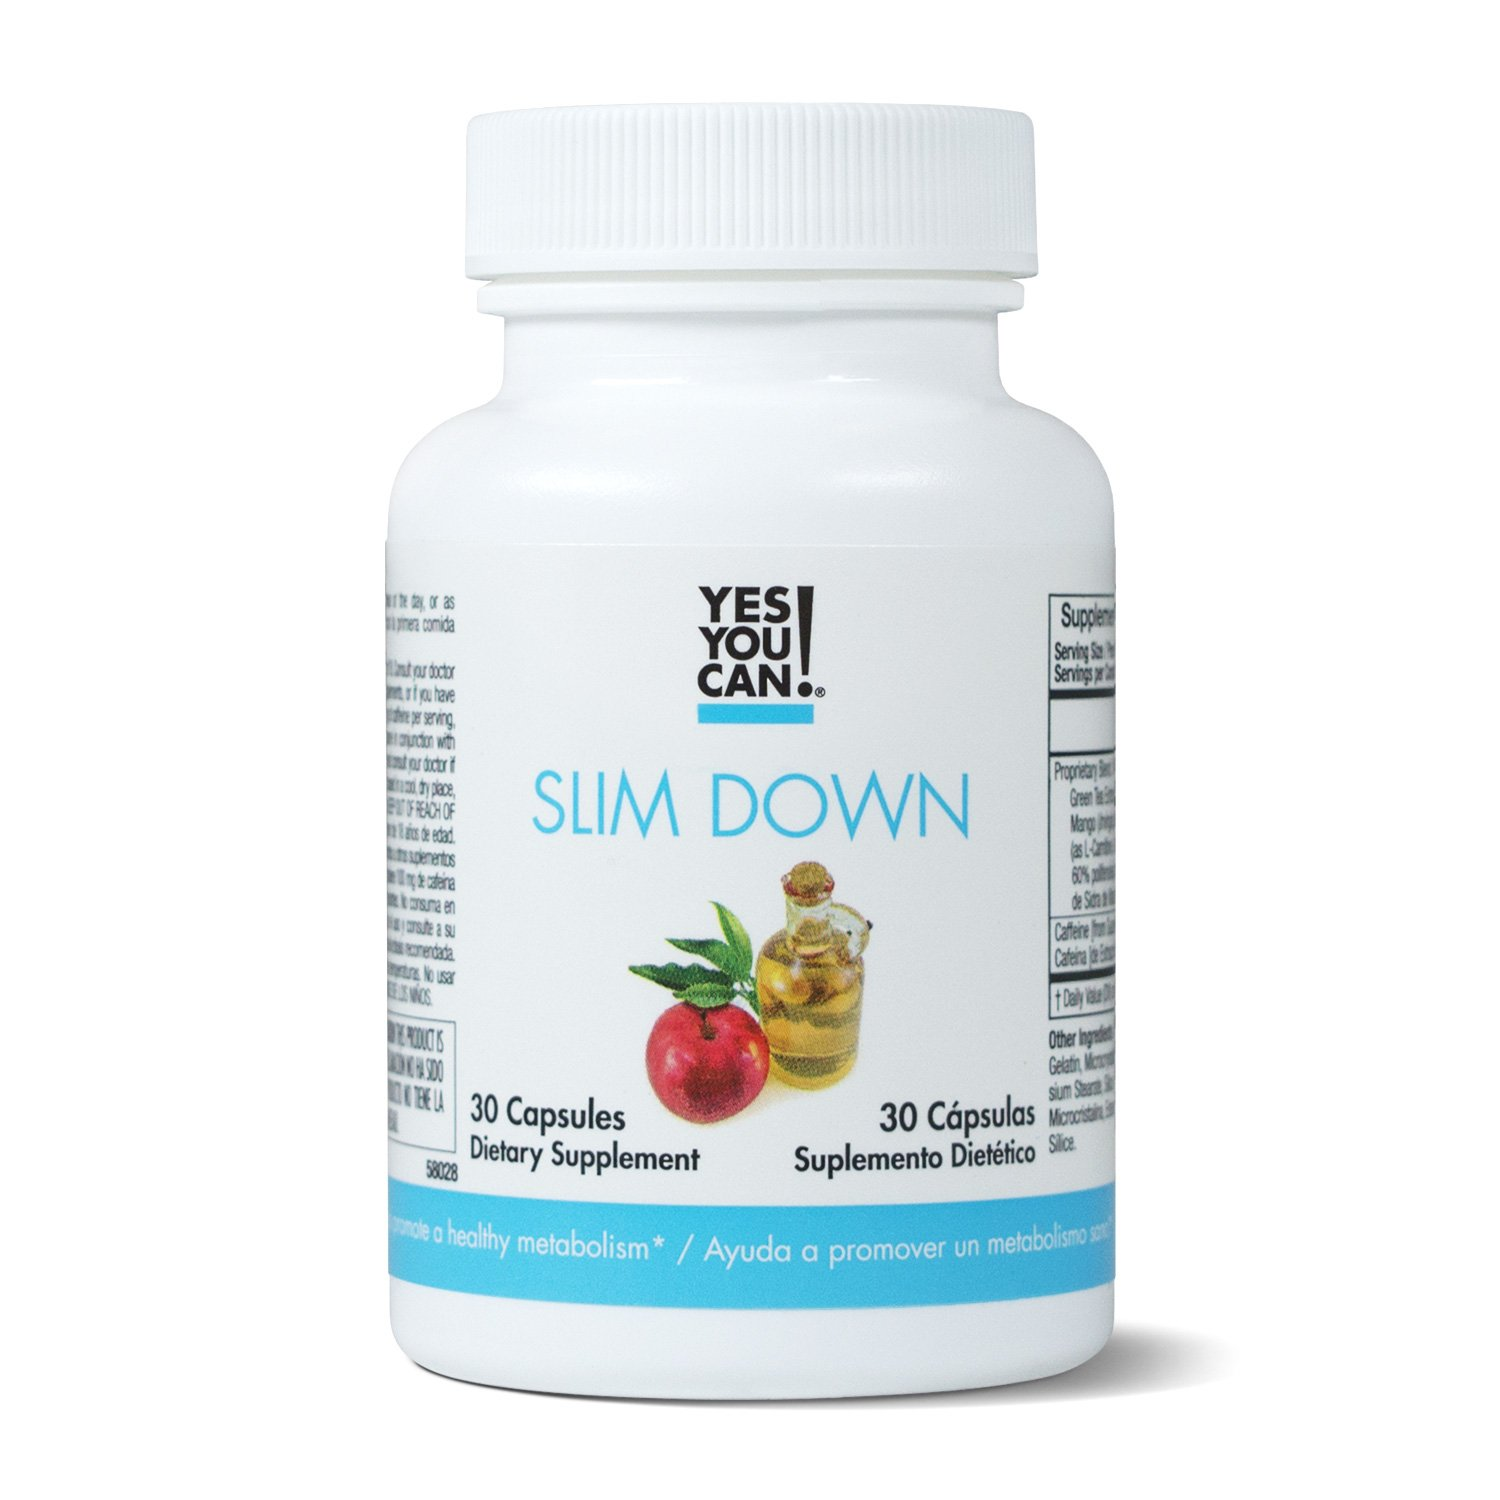 Yes You Can! Slim Down - Boost your Metabolism, increase thermogenesis. African mango, L-Carnitine, apple cider vinegar, green tea extract. Quemador de Grasa - 30 Capsules by Yes You Can